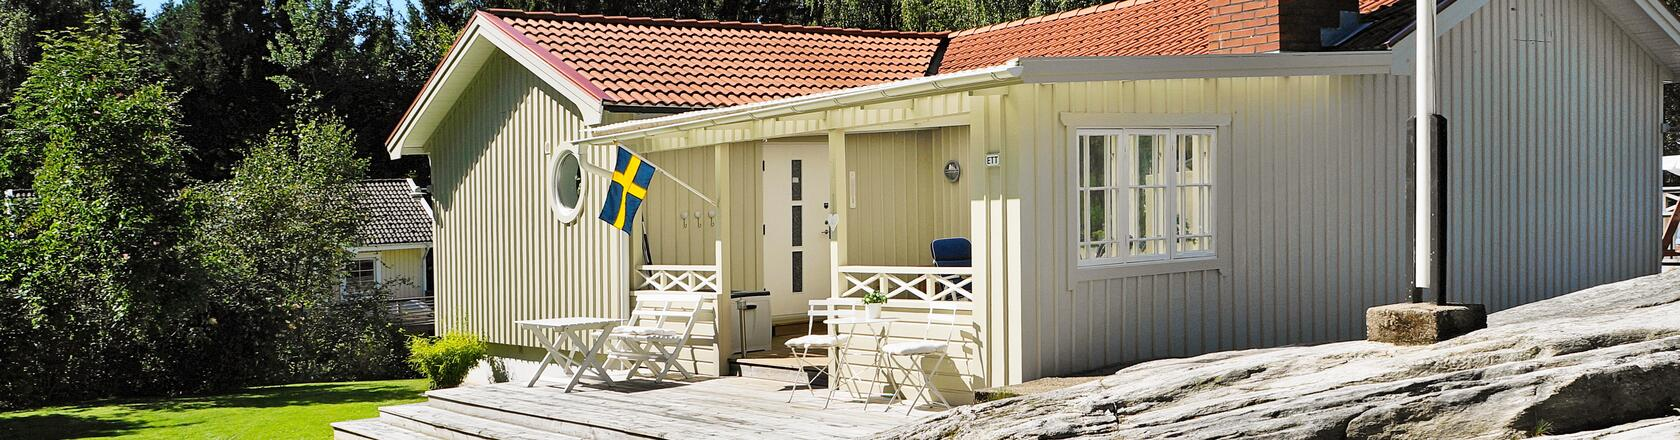 Bokenäs in Sweden - Rent a holiday home  with DanCenter